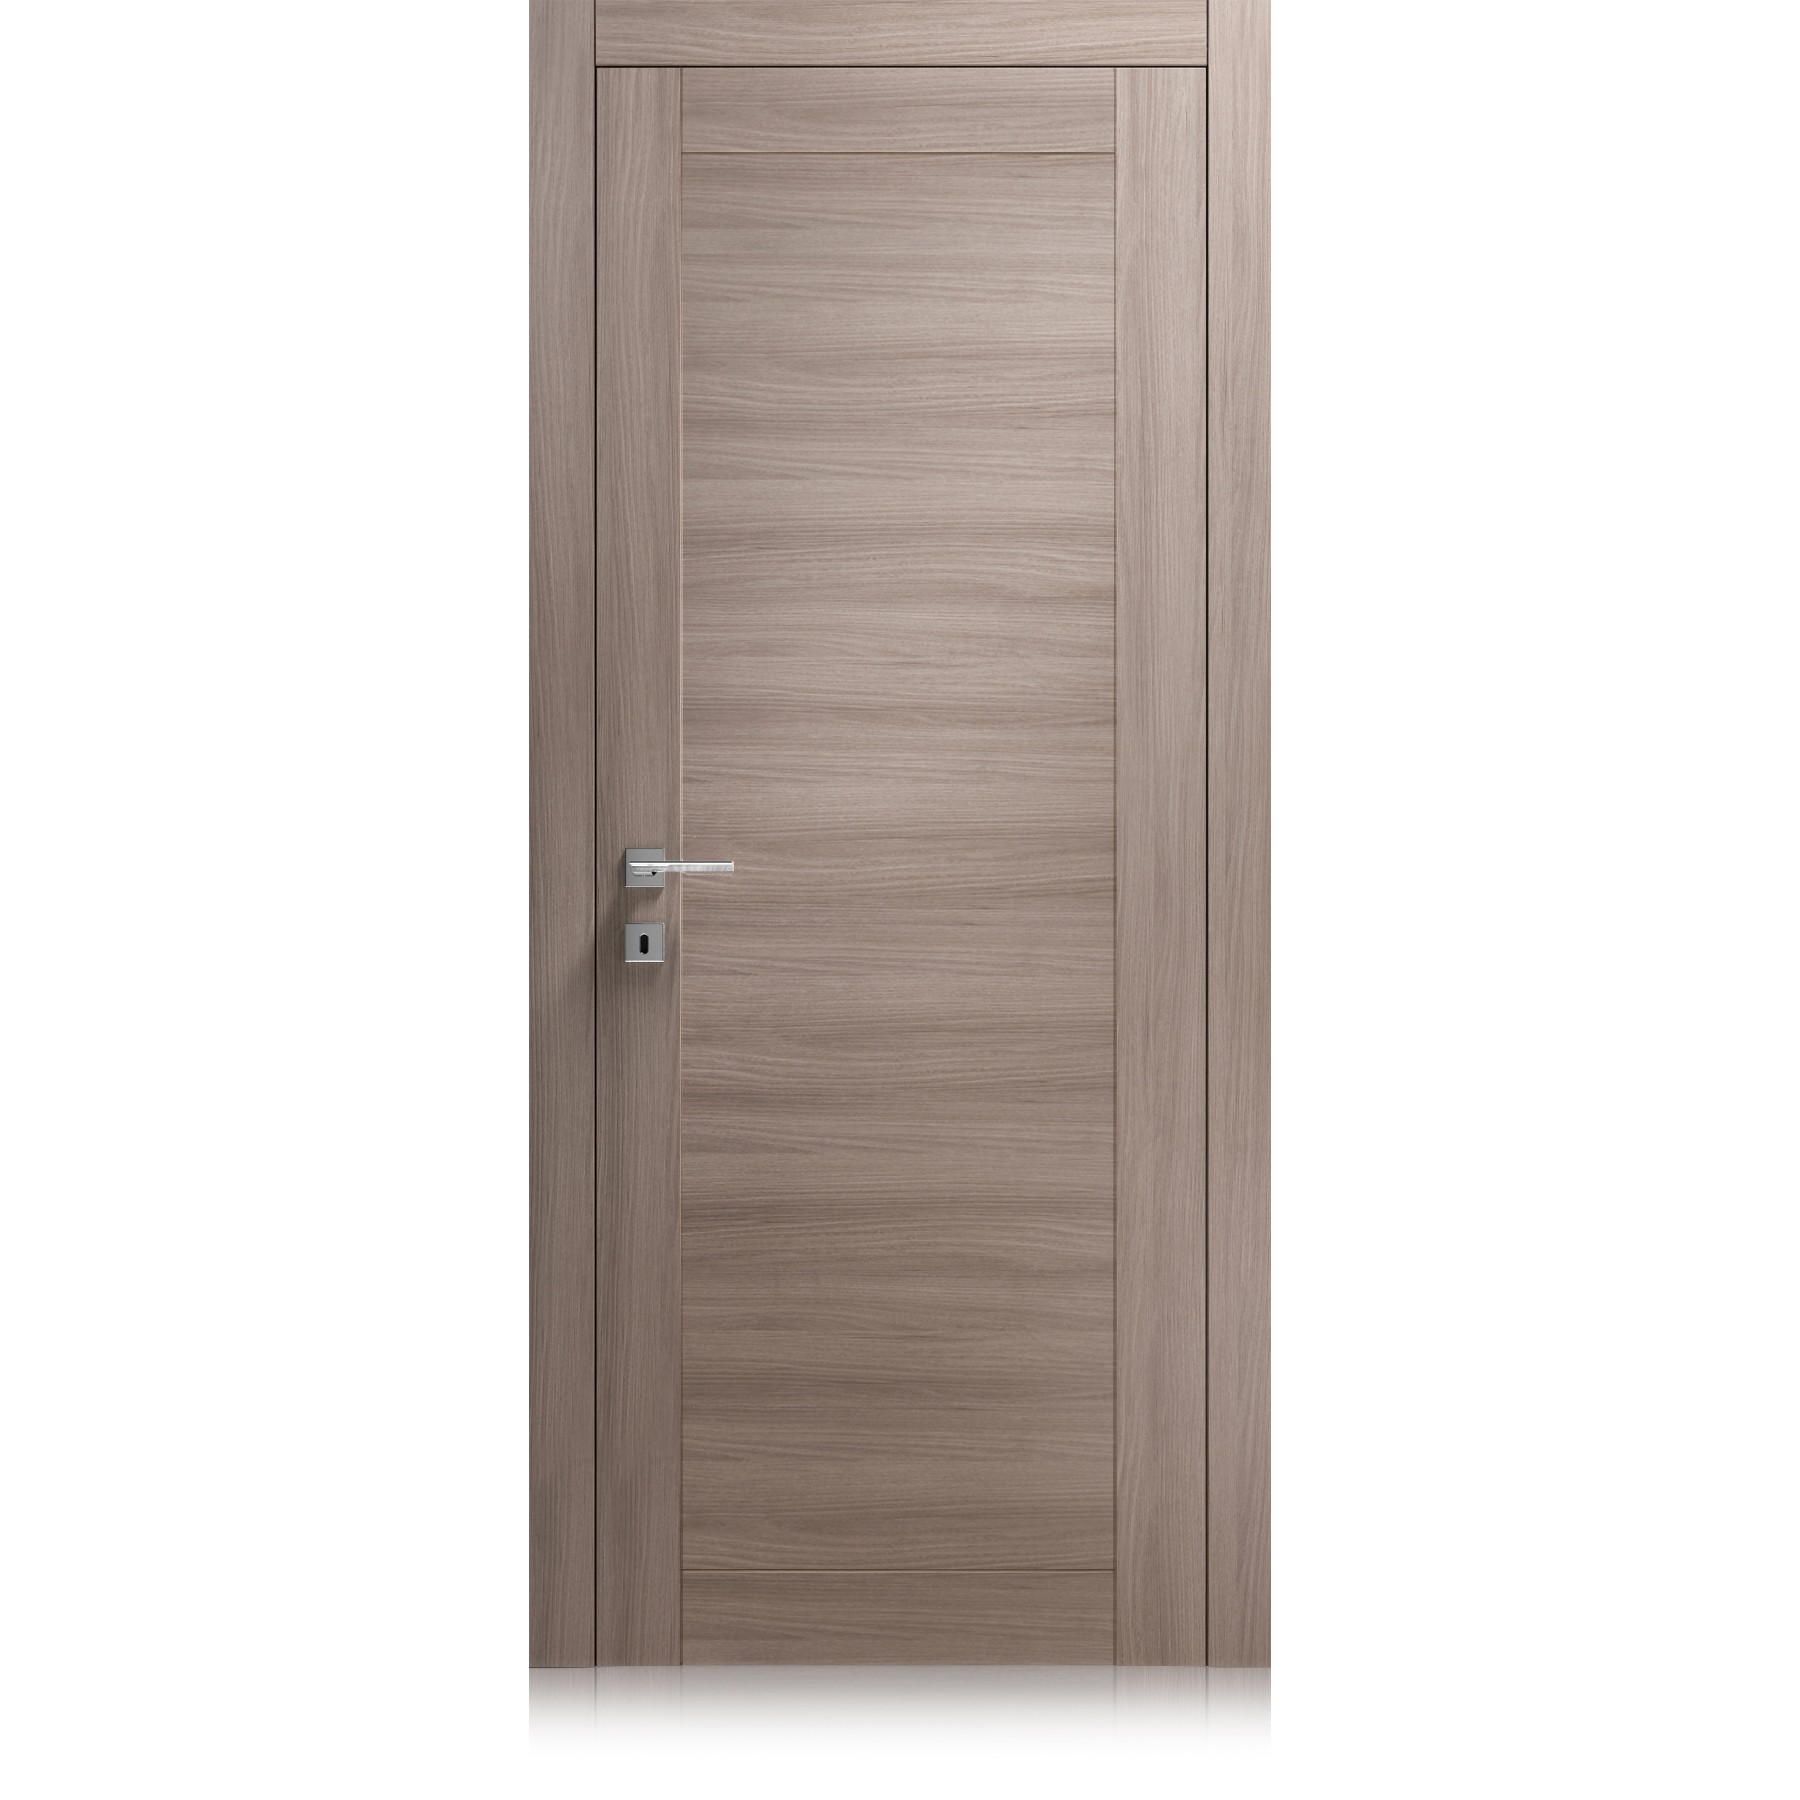 Area / 2 Simply ontario polvere door